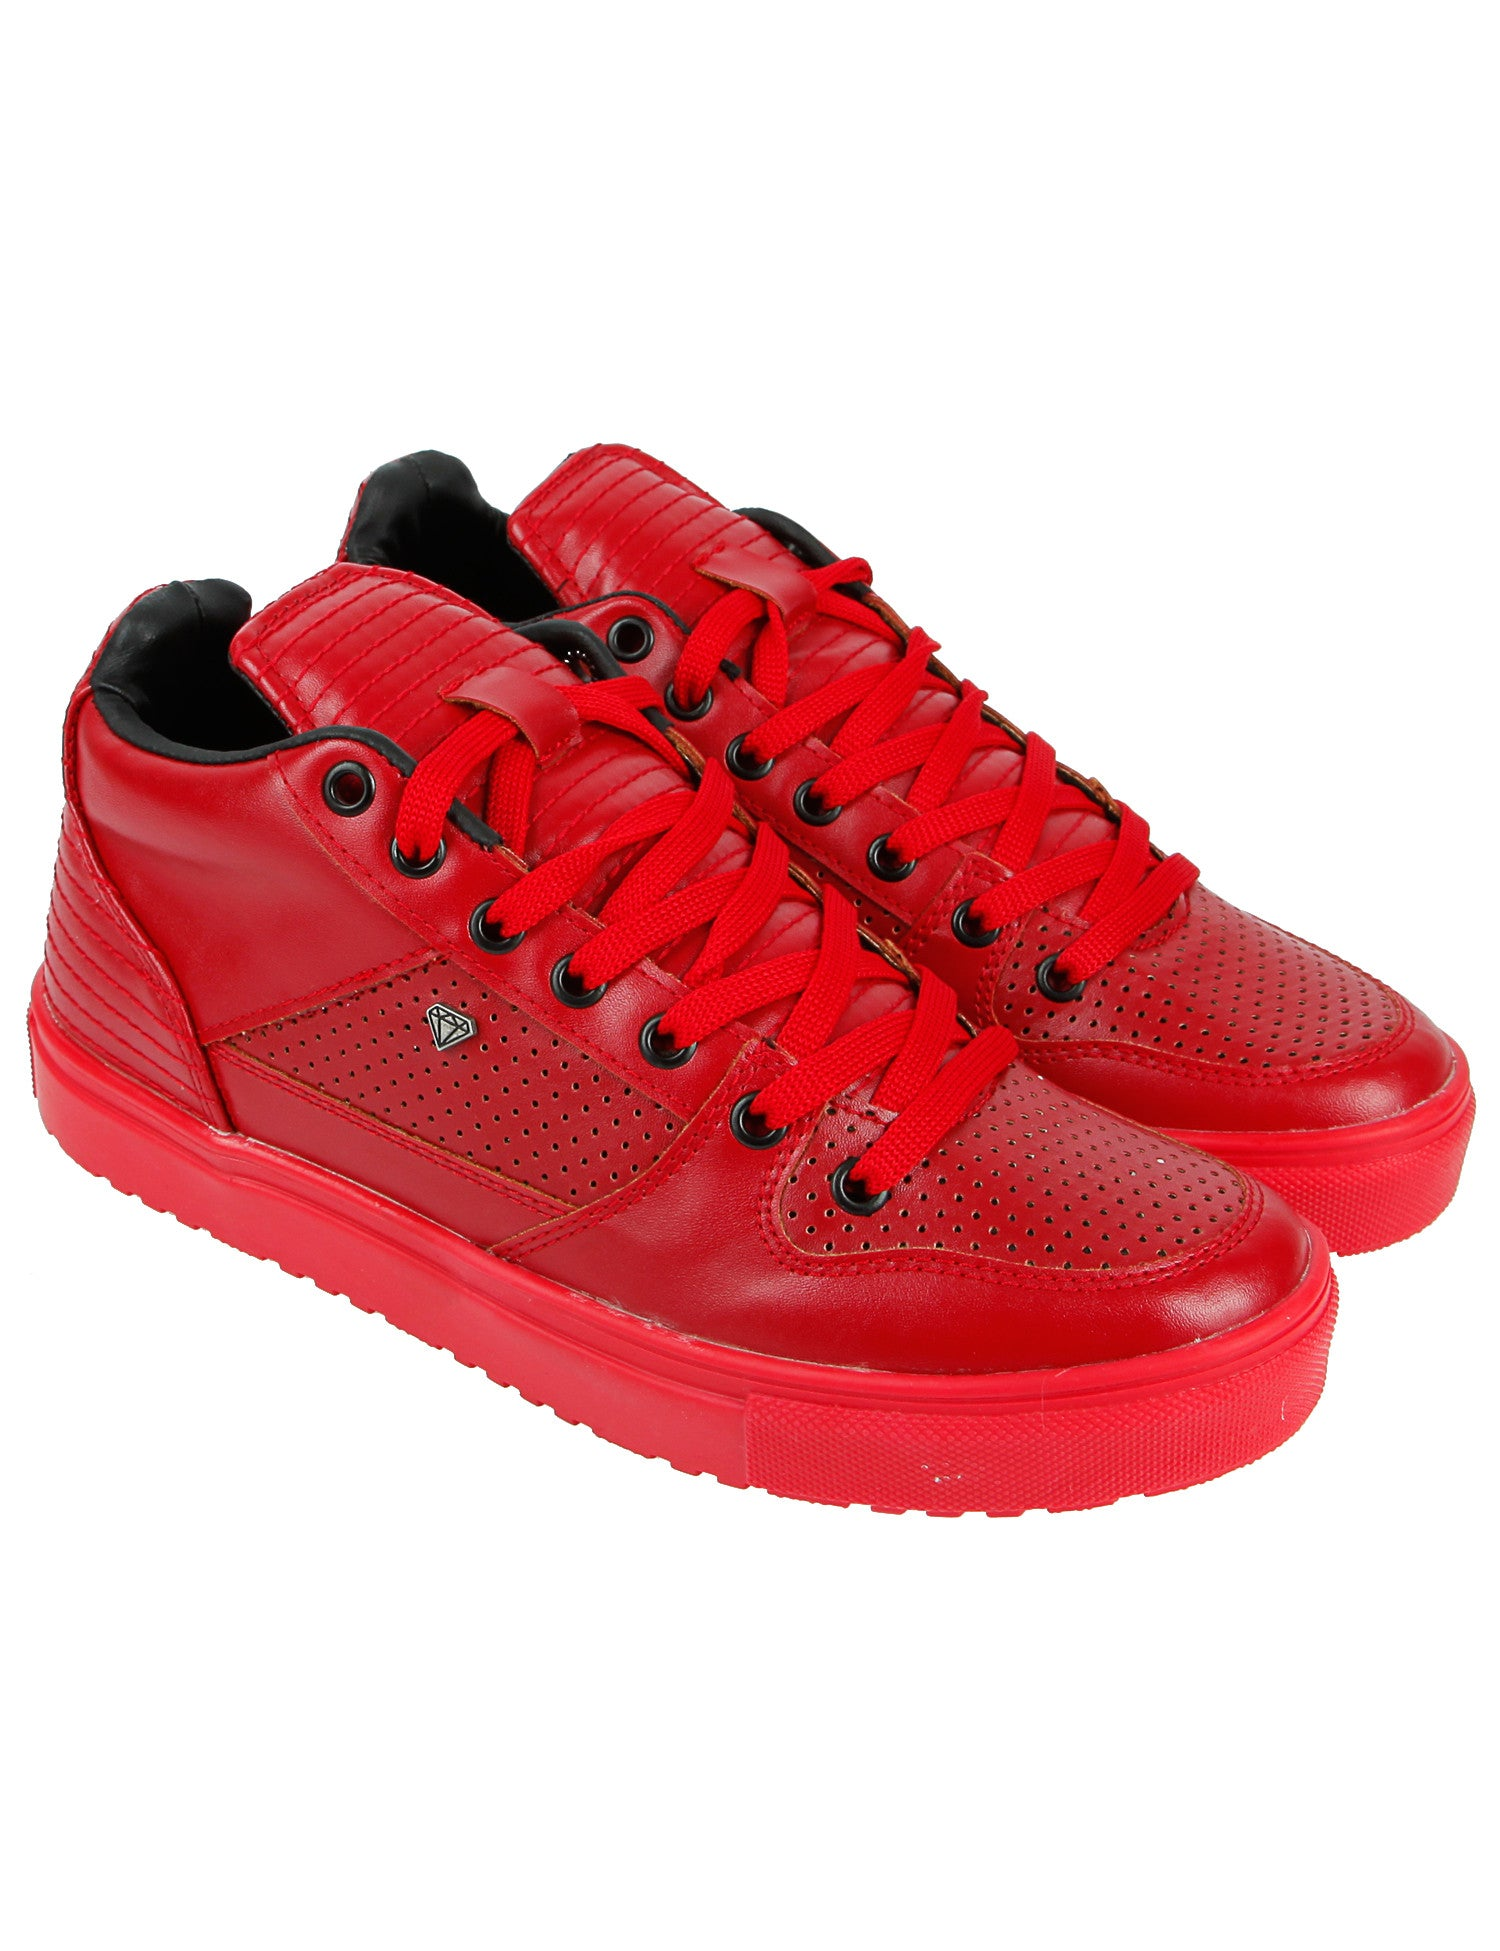 Cash Money Sneakers CMS9 Sunday Red